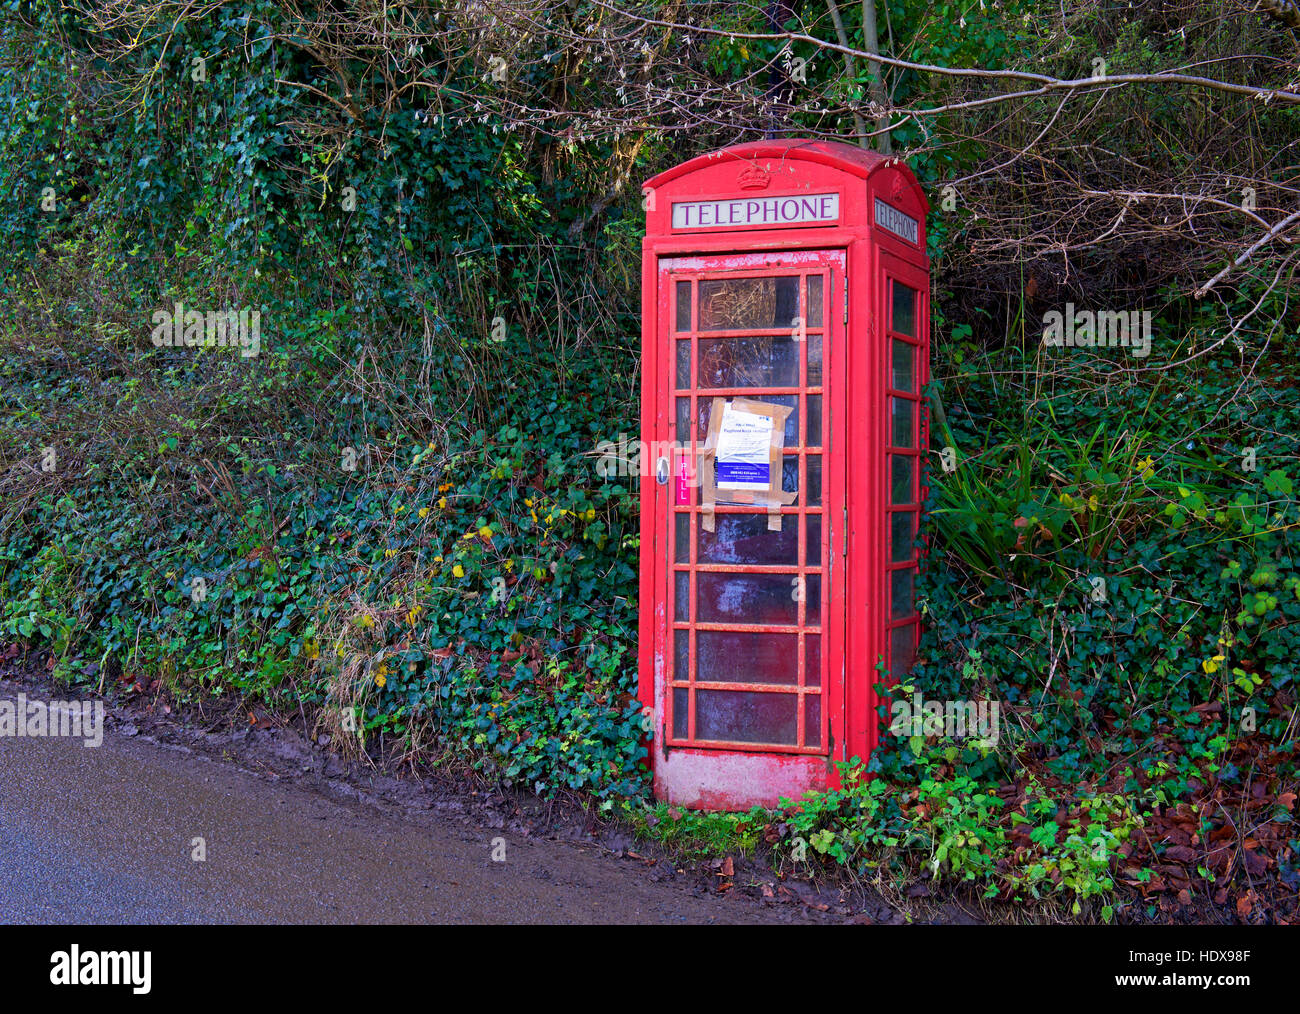 Sign notifying public that this telephone box will be removed, England UK - Stock Image